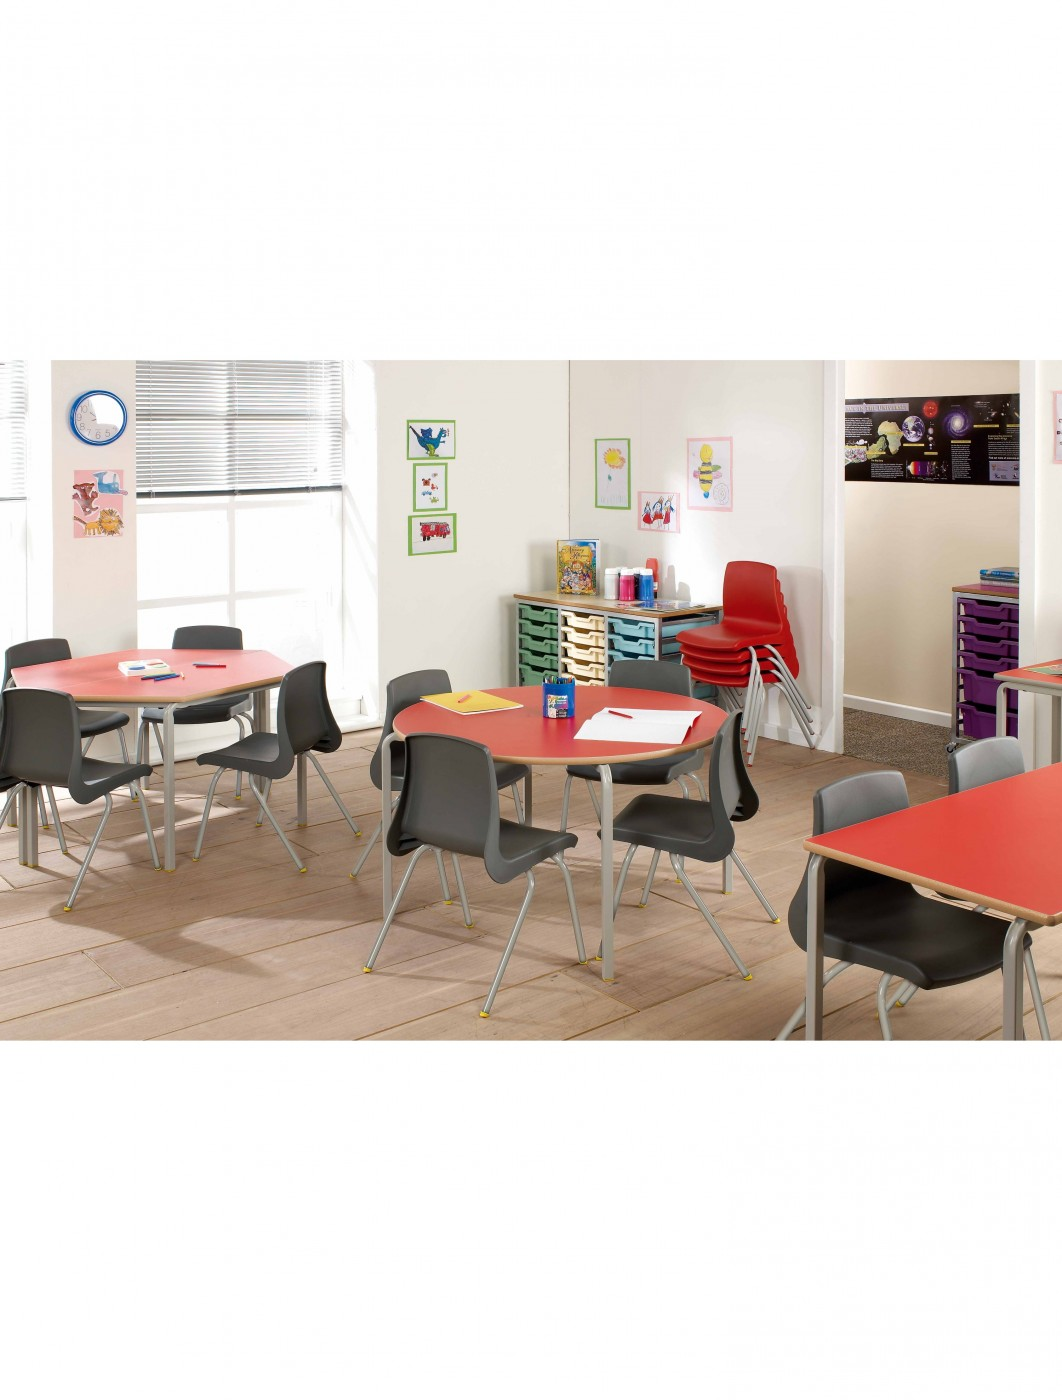 CBSQ-115-MD Rectangular Stacking Tables - School Stacking Tables